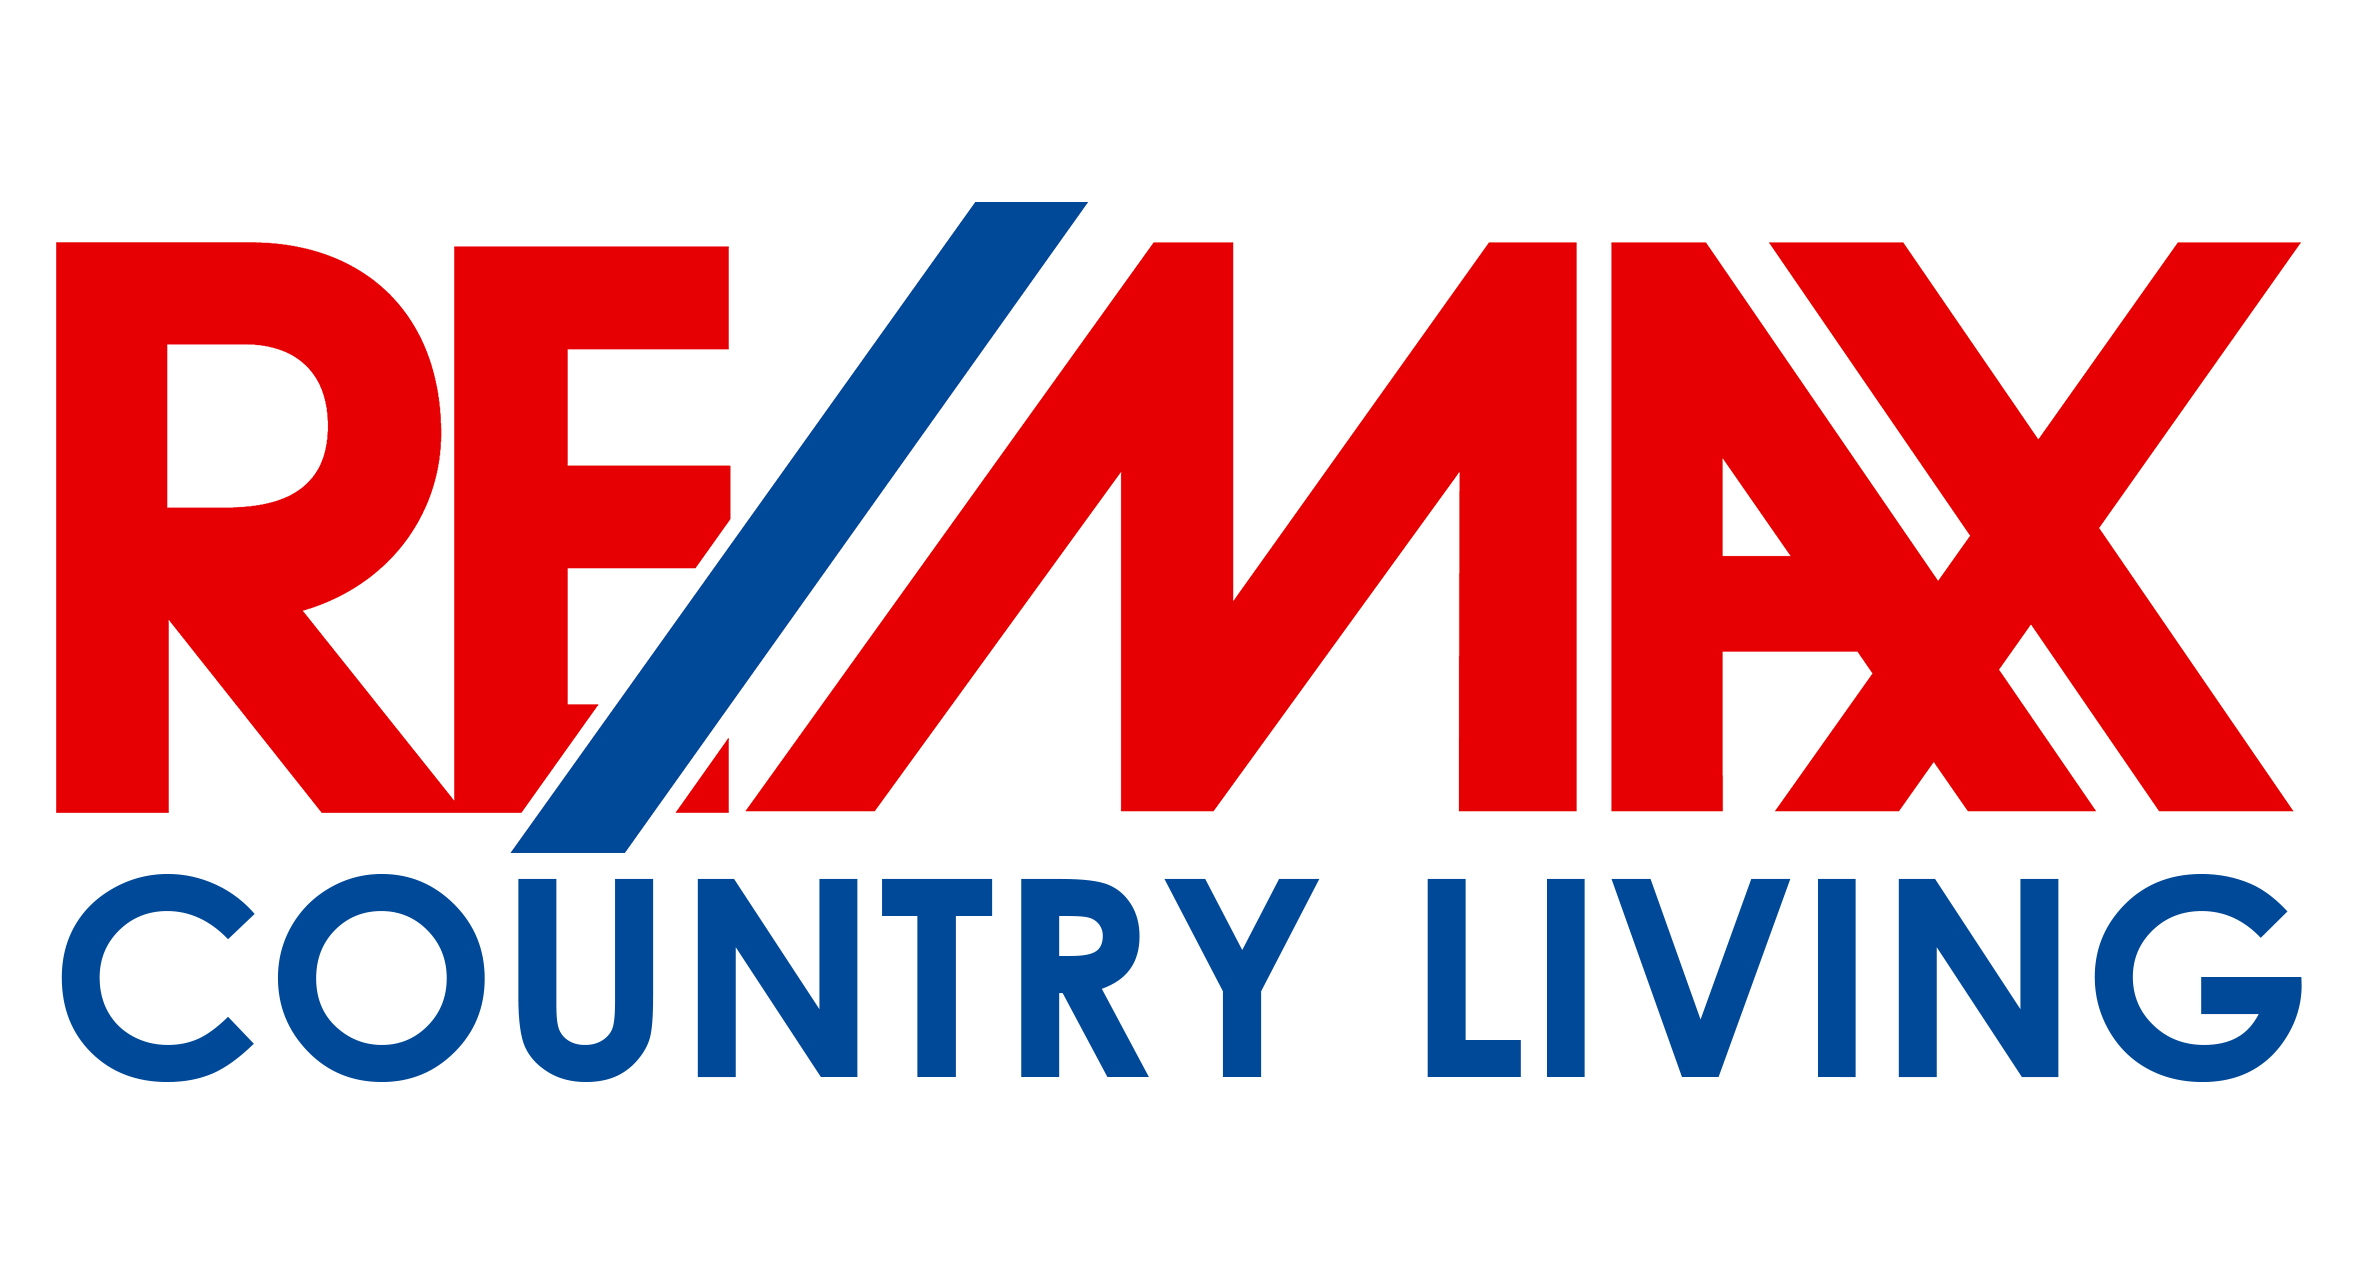 Re Max Country Living